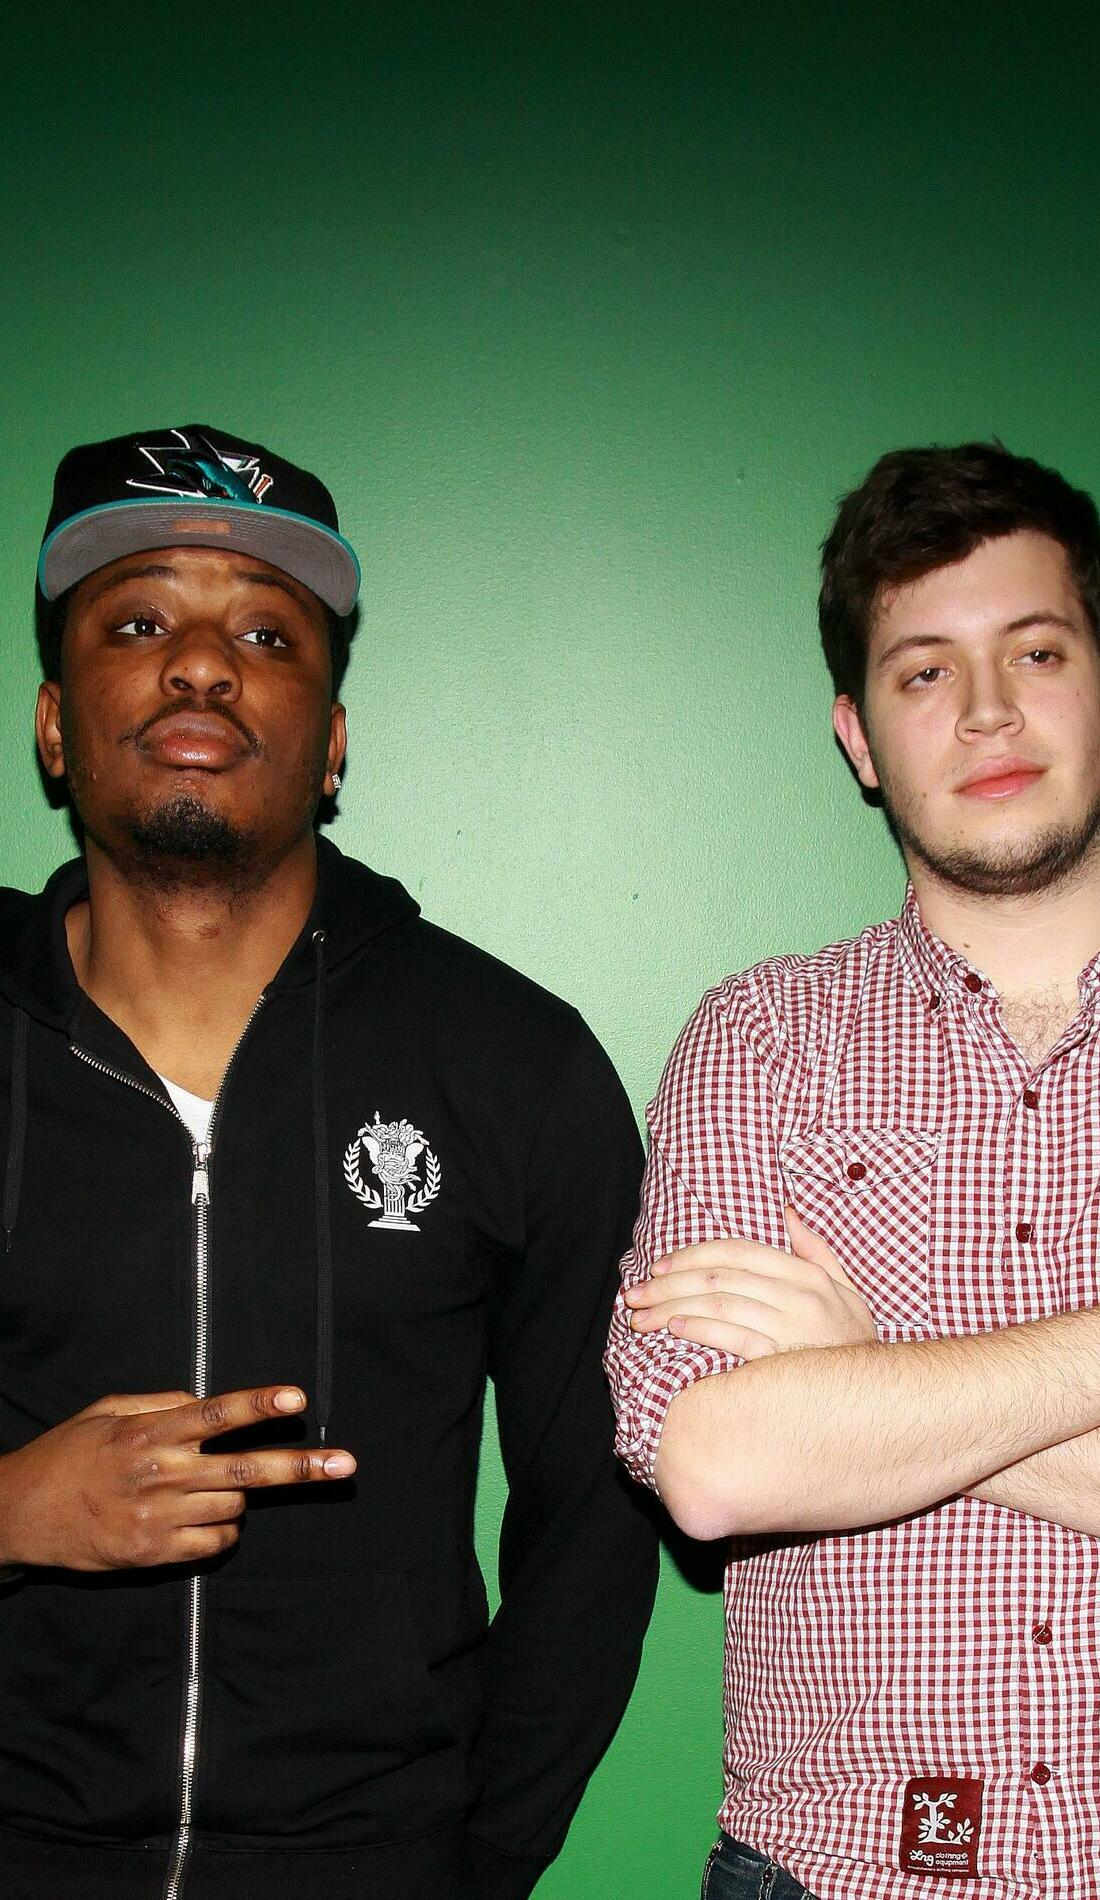 A Chiddy Bang live event